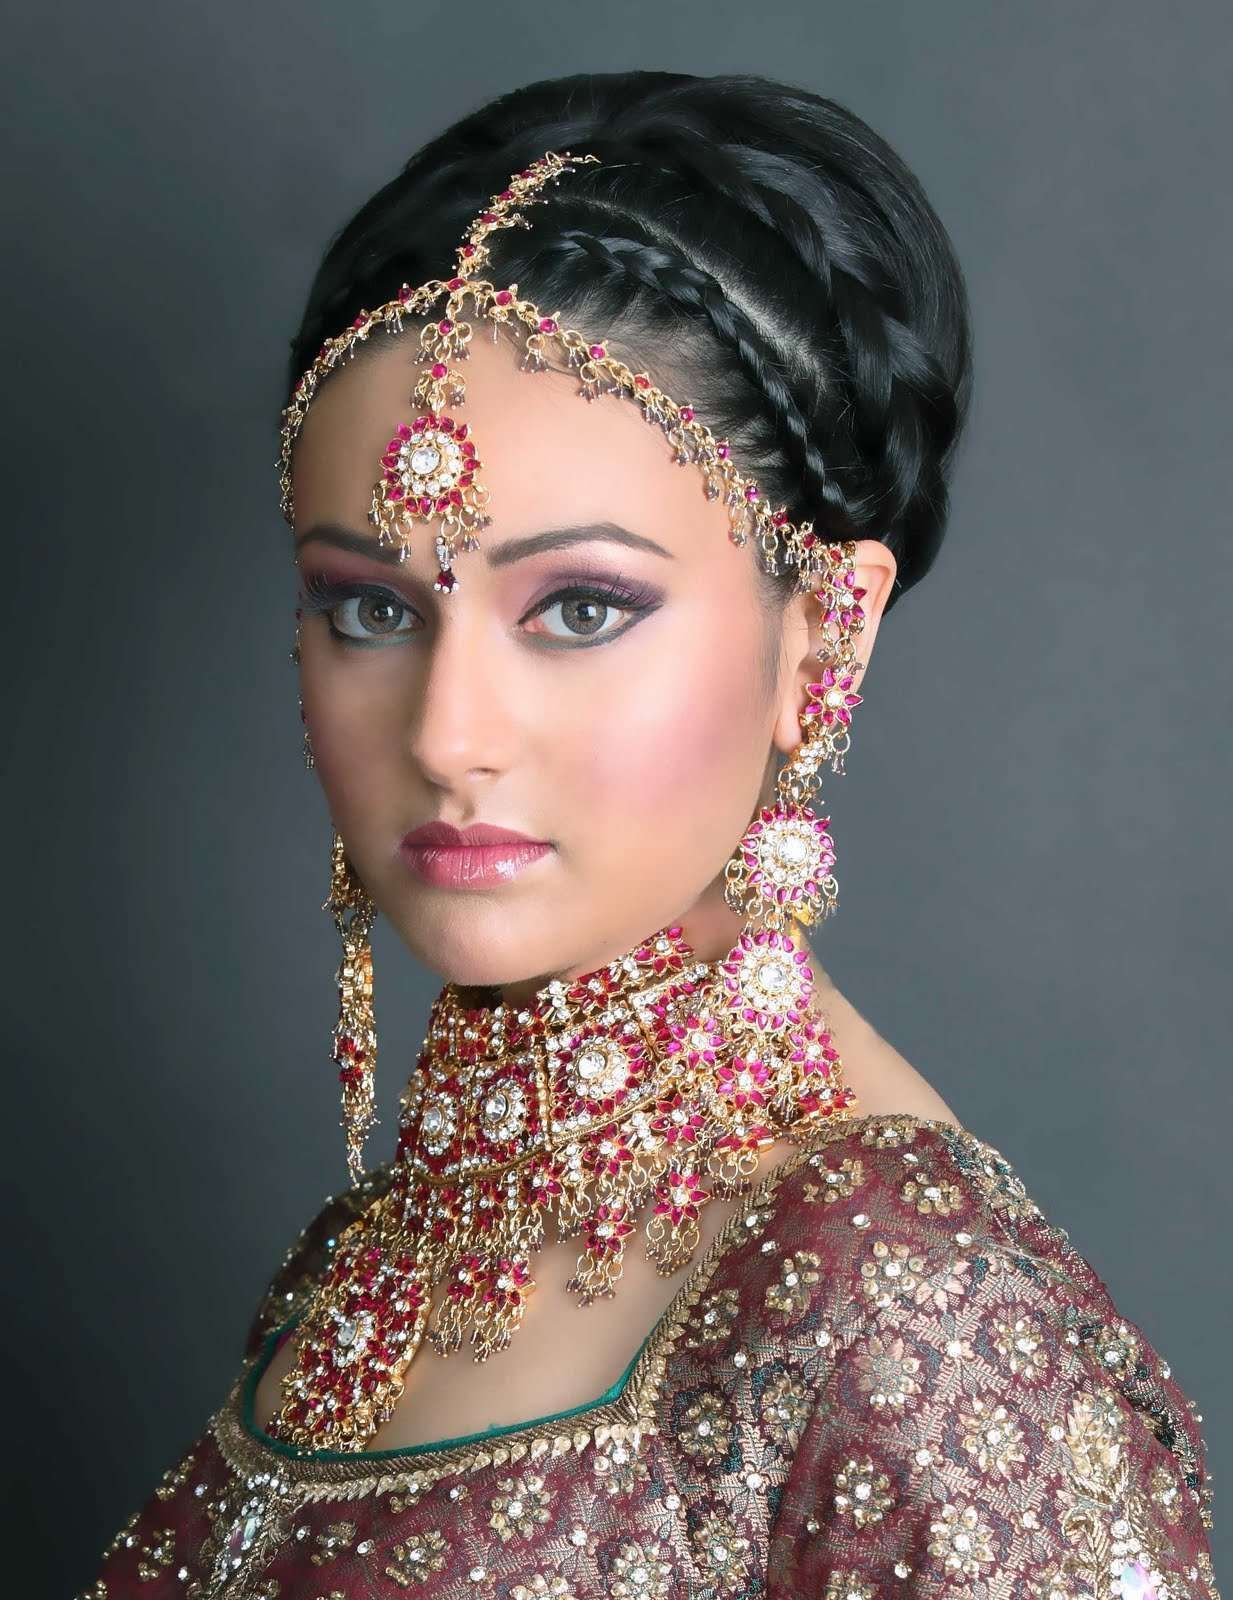 wedding hair style asian 1080p hd pictures | wedding